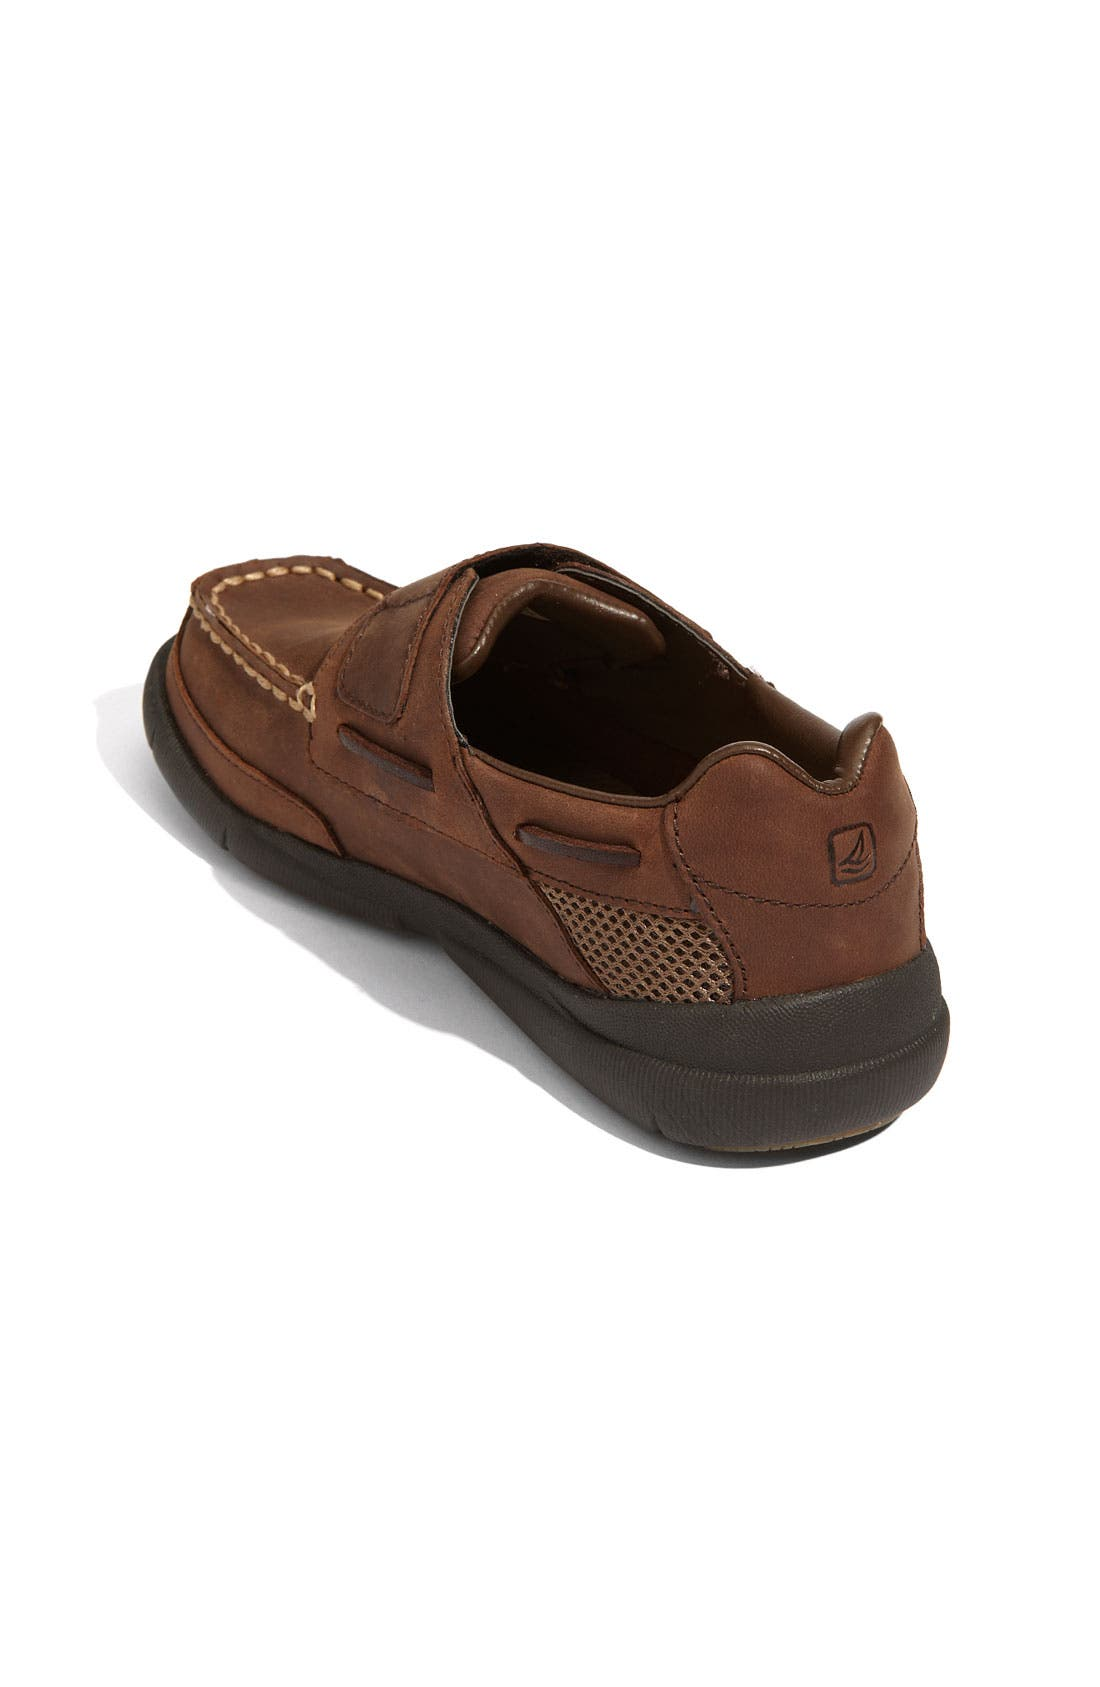 Alternate Image 2  - Sperry Kids 'Charter HL' Boat Shoe (Walker, Toddler, Little Kid & Big Kid)